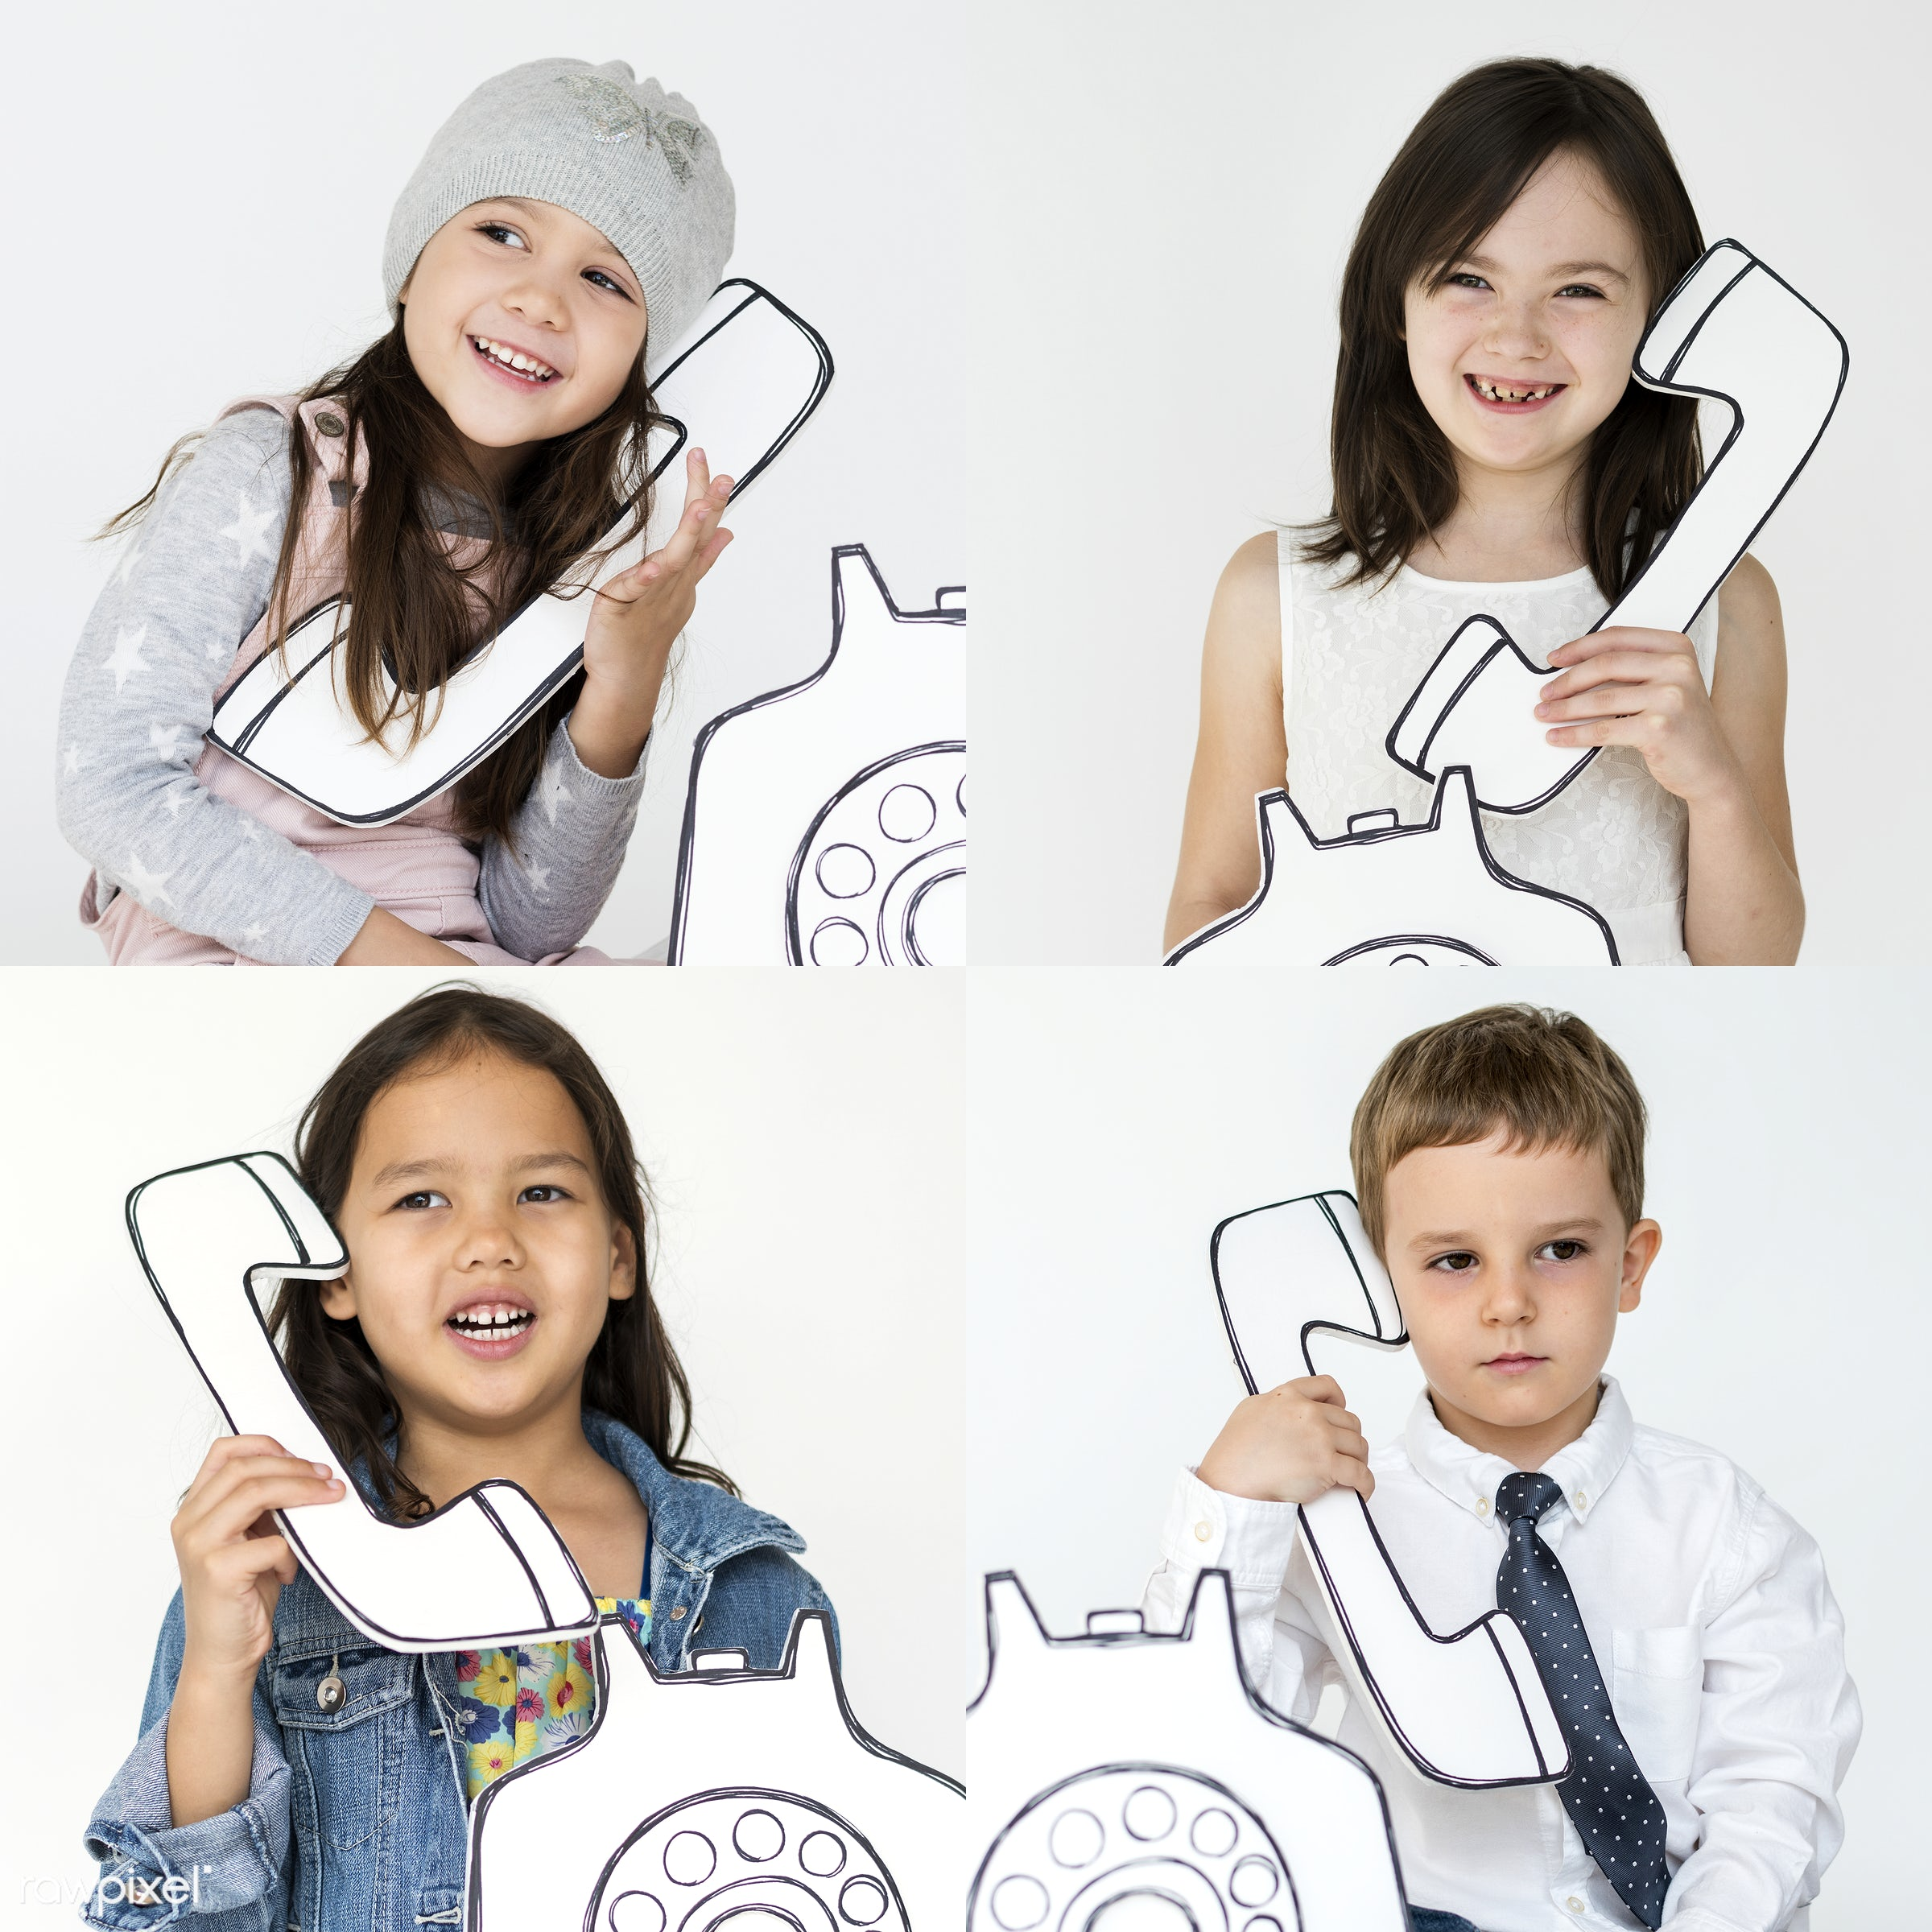 invention, studio, call, person, phone, technology, set, children, use, calling, people, child, life, communicate, woman,...